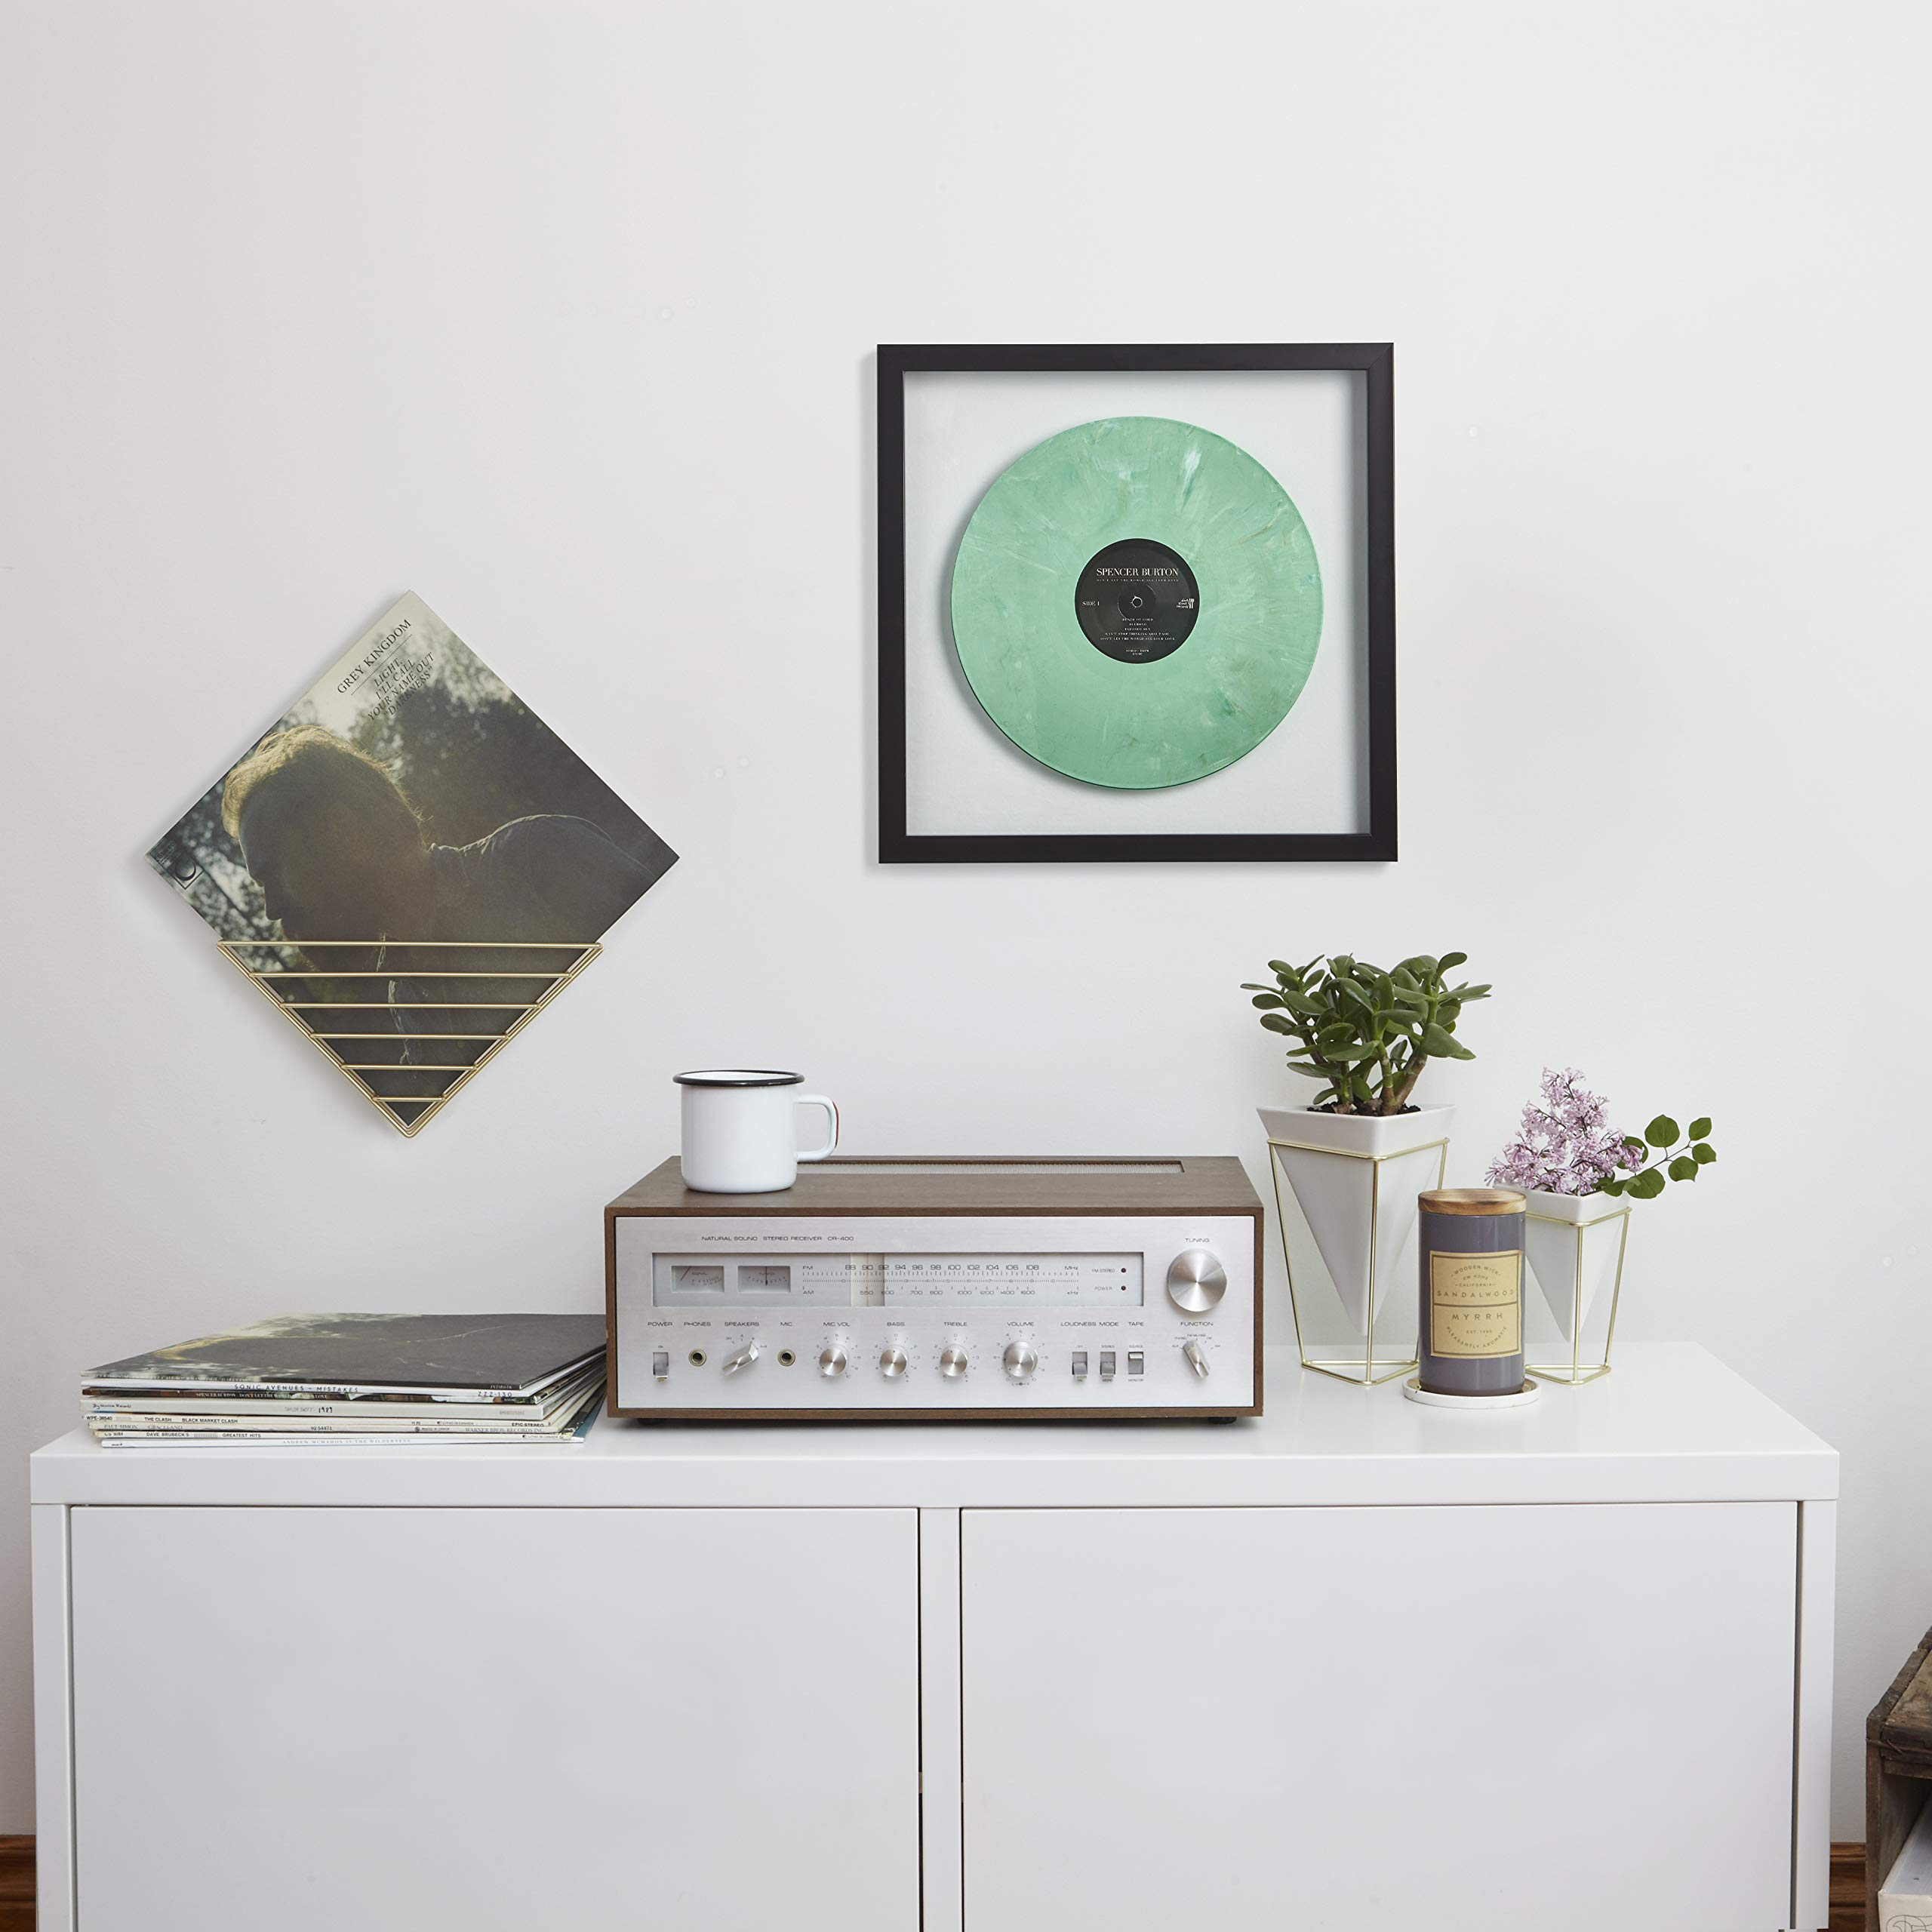 Umbra Record Album Frame 14-1/2x14-1/2-Inch, Modern Picture Frame Designed to Display a Floating 12-Inch by 12-Inch Album Cover by Umbra (Image #3)